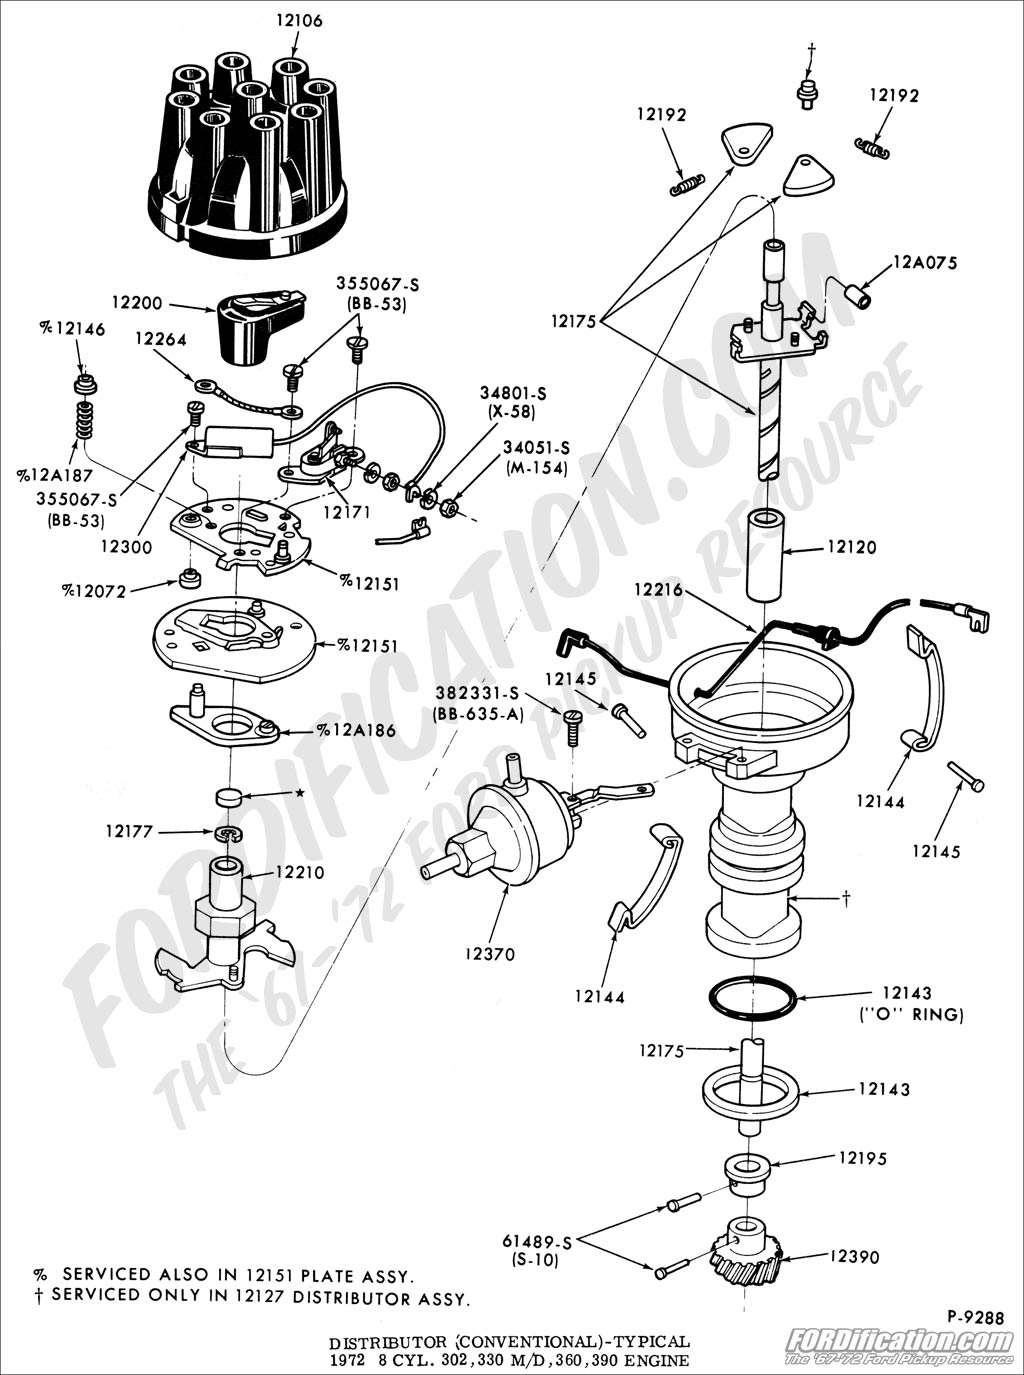 ford truck technical drawings and schematics section i Dodge 3500 Transmission Diagram ford truck technical drawings and schematics section i electrical and wiring